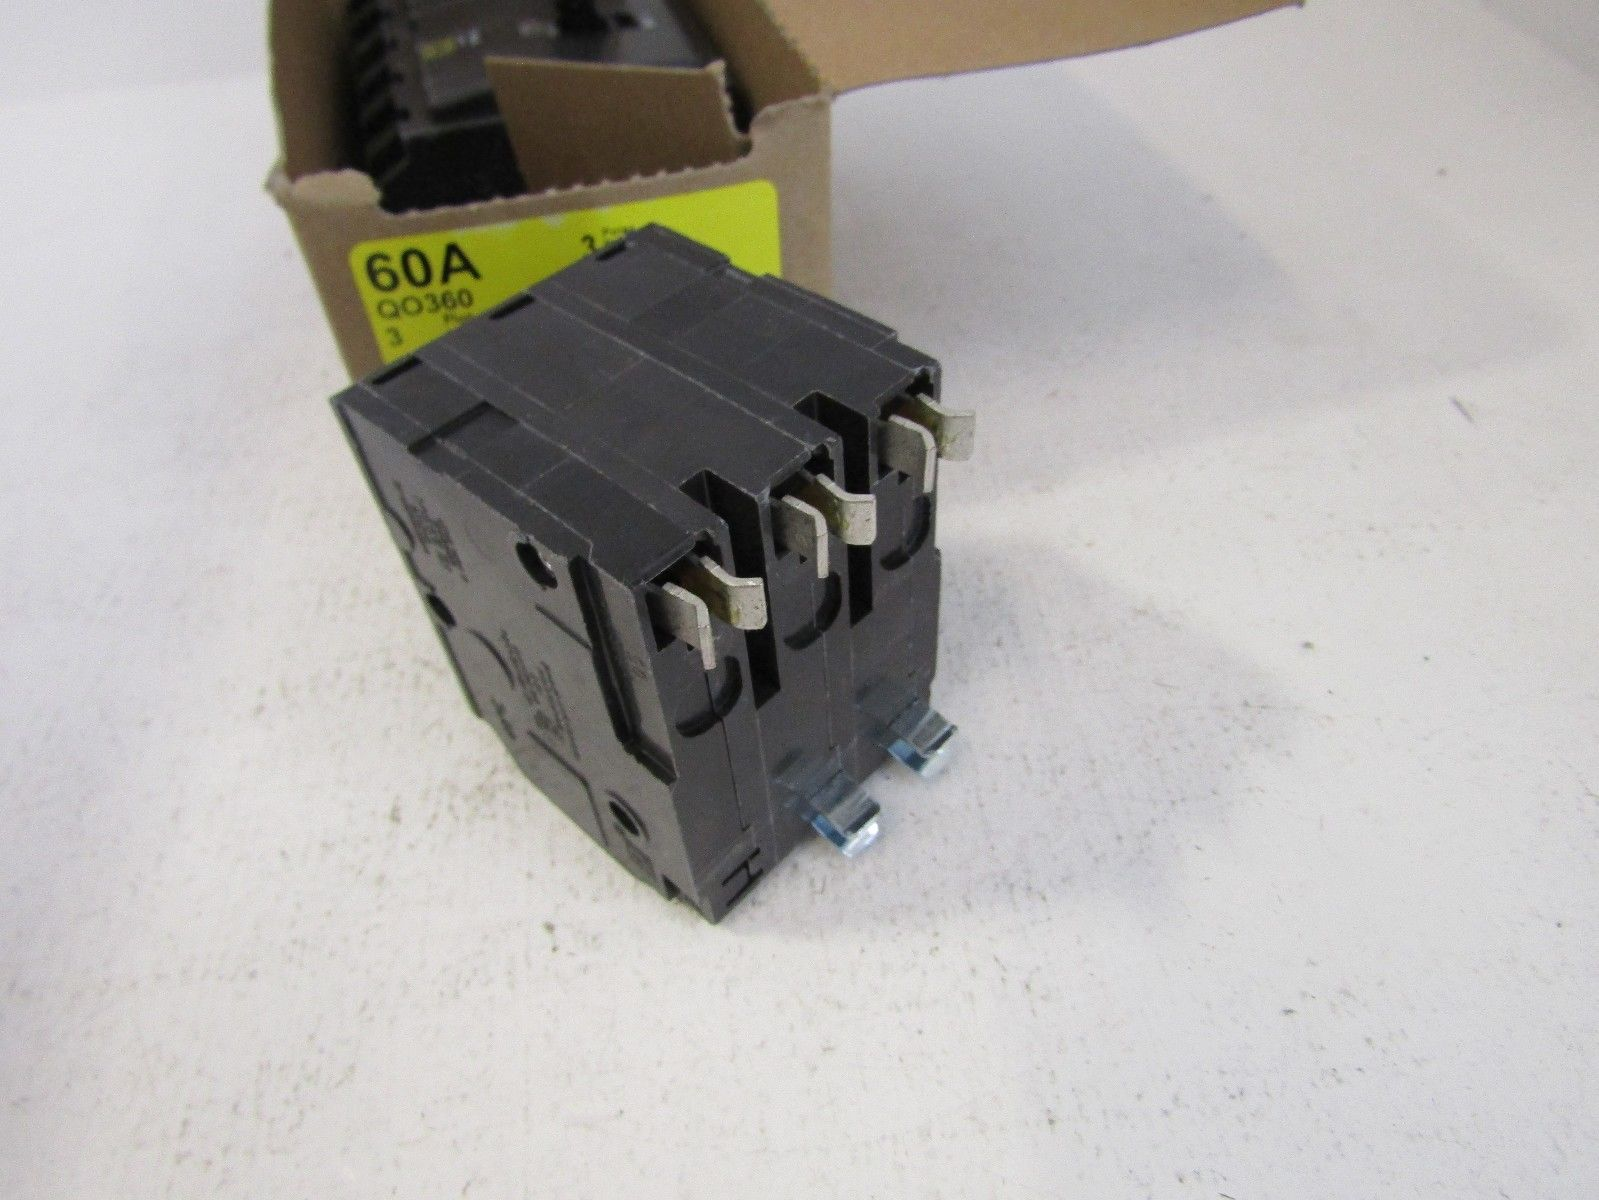 NEW LOT OF 3 SQUARE D QO360 3 POLE 60 AMP CIRCUIT BREAKERS FITS NQ ...